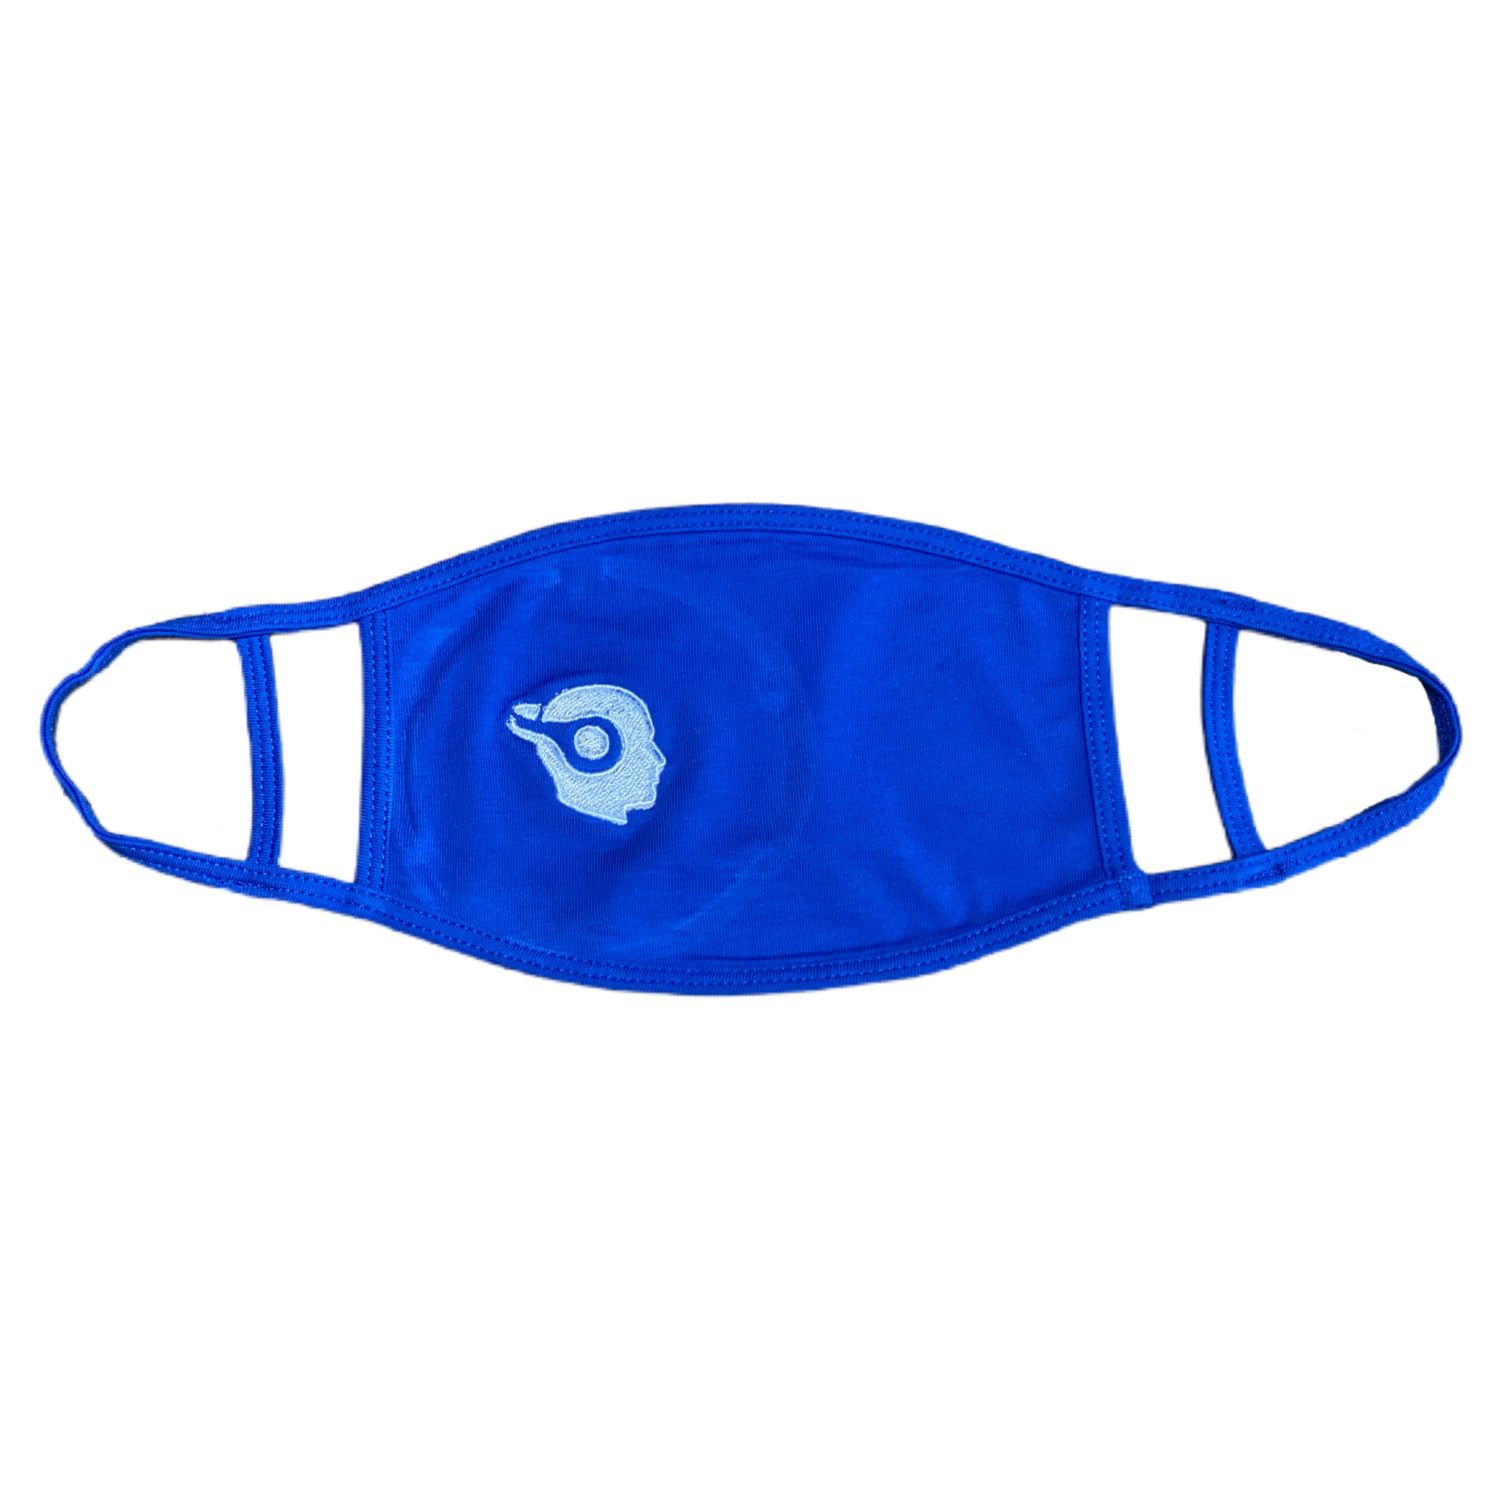 ROYAL BLUE - LIGHT BLUE LOGO - EMBROIDERED FACE MASK